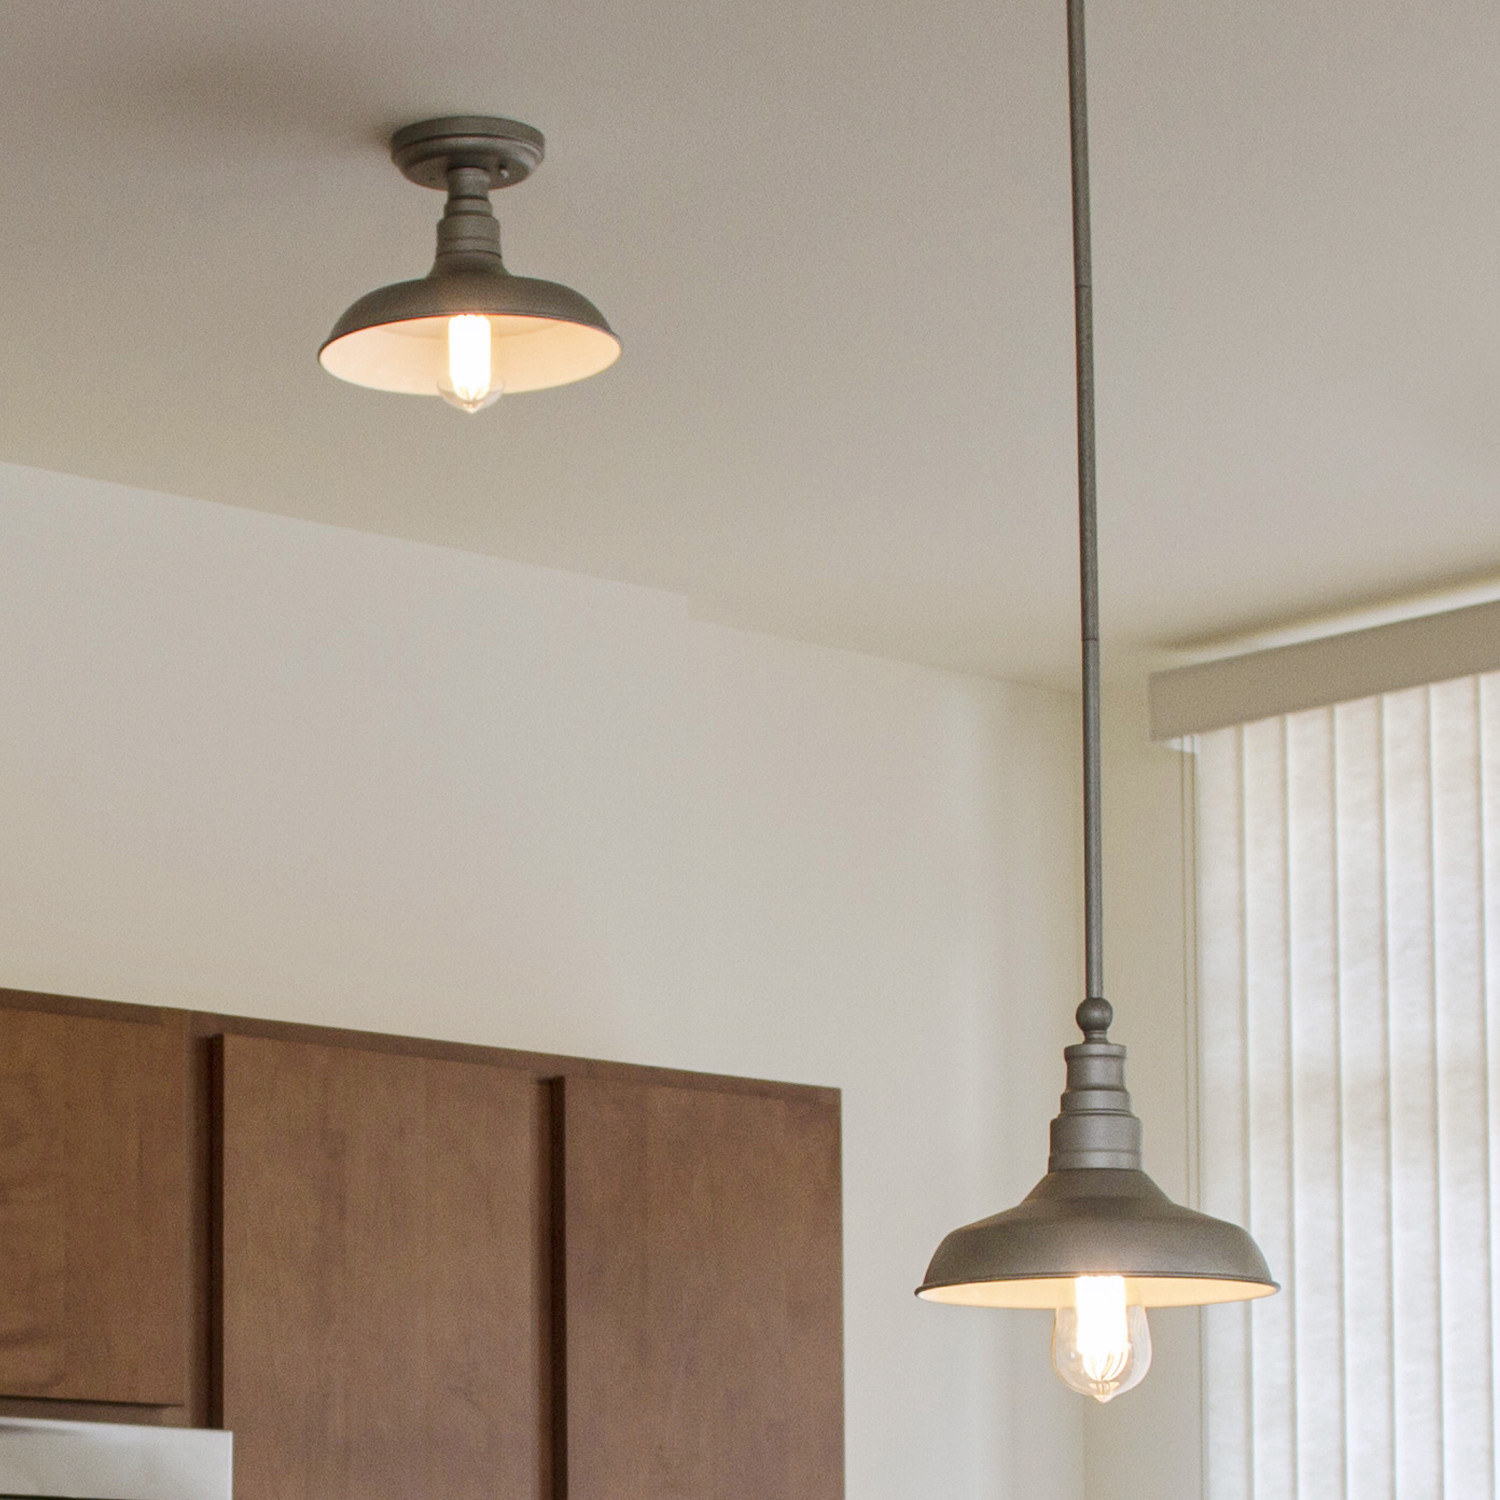 The tin light hanging at different lengths